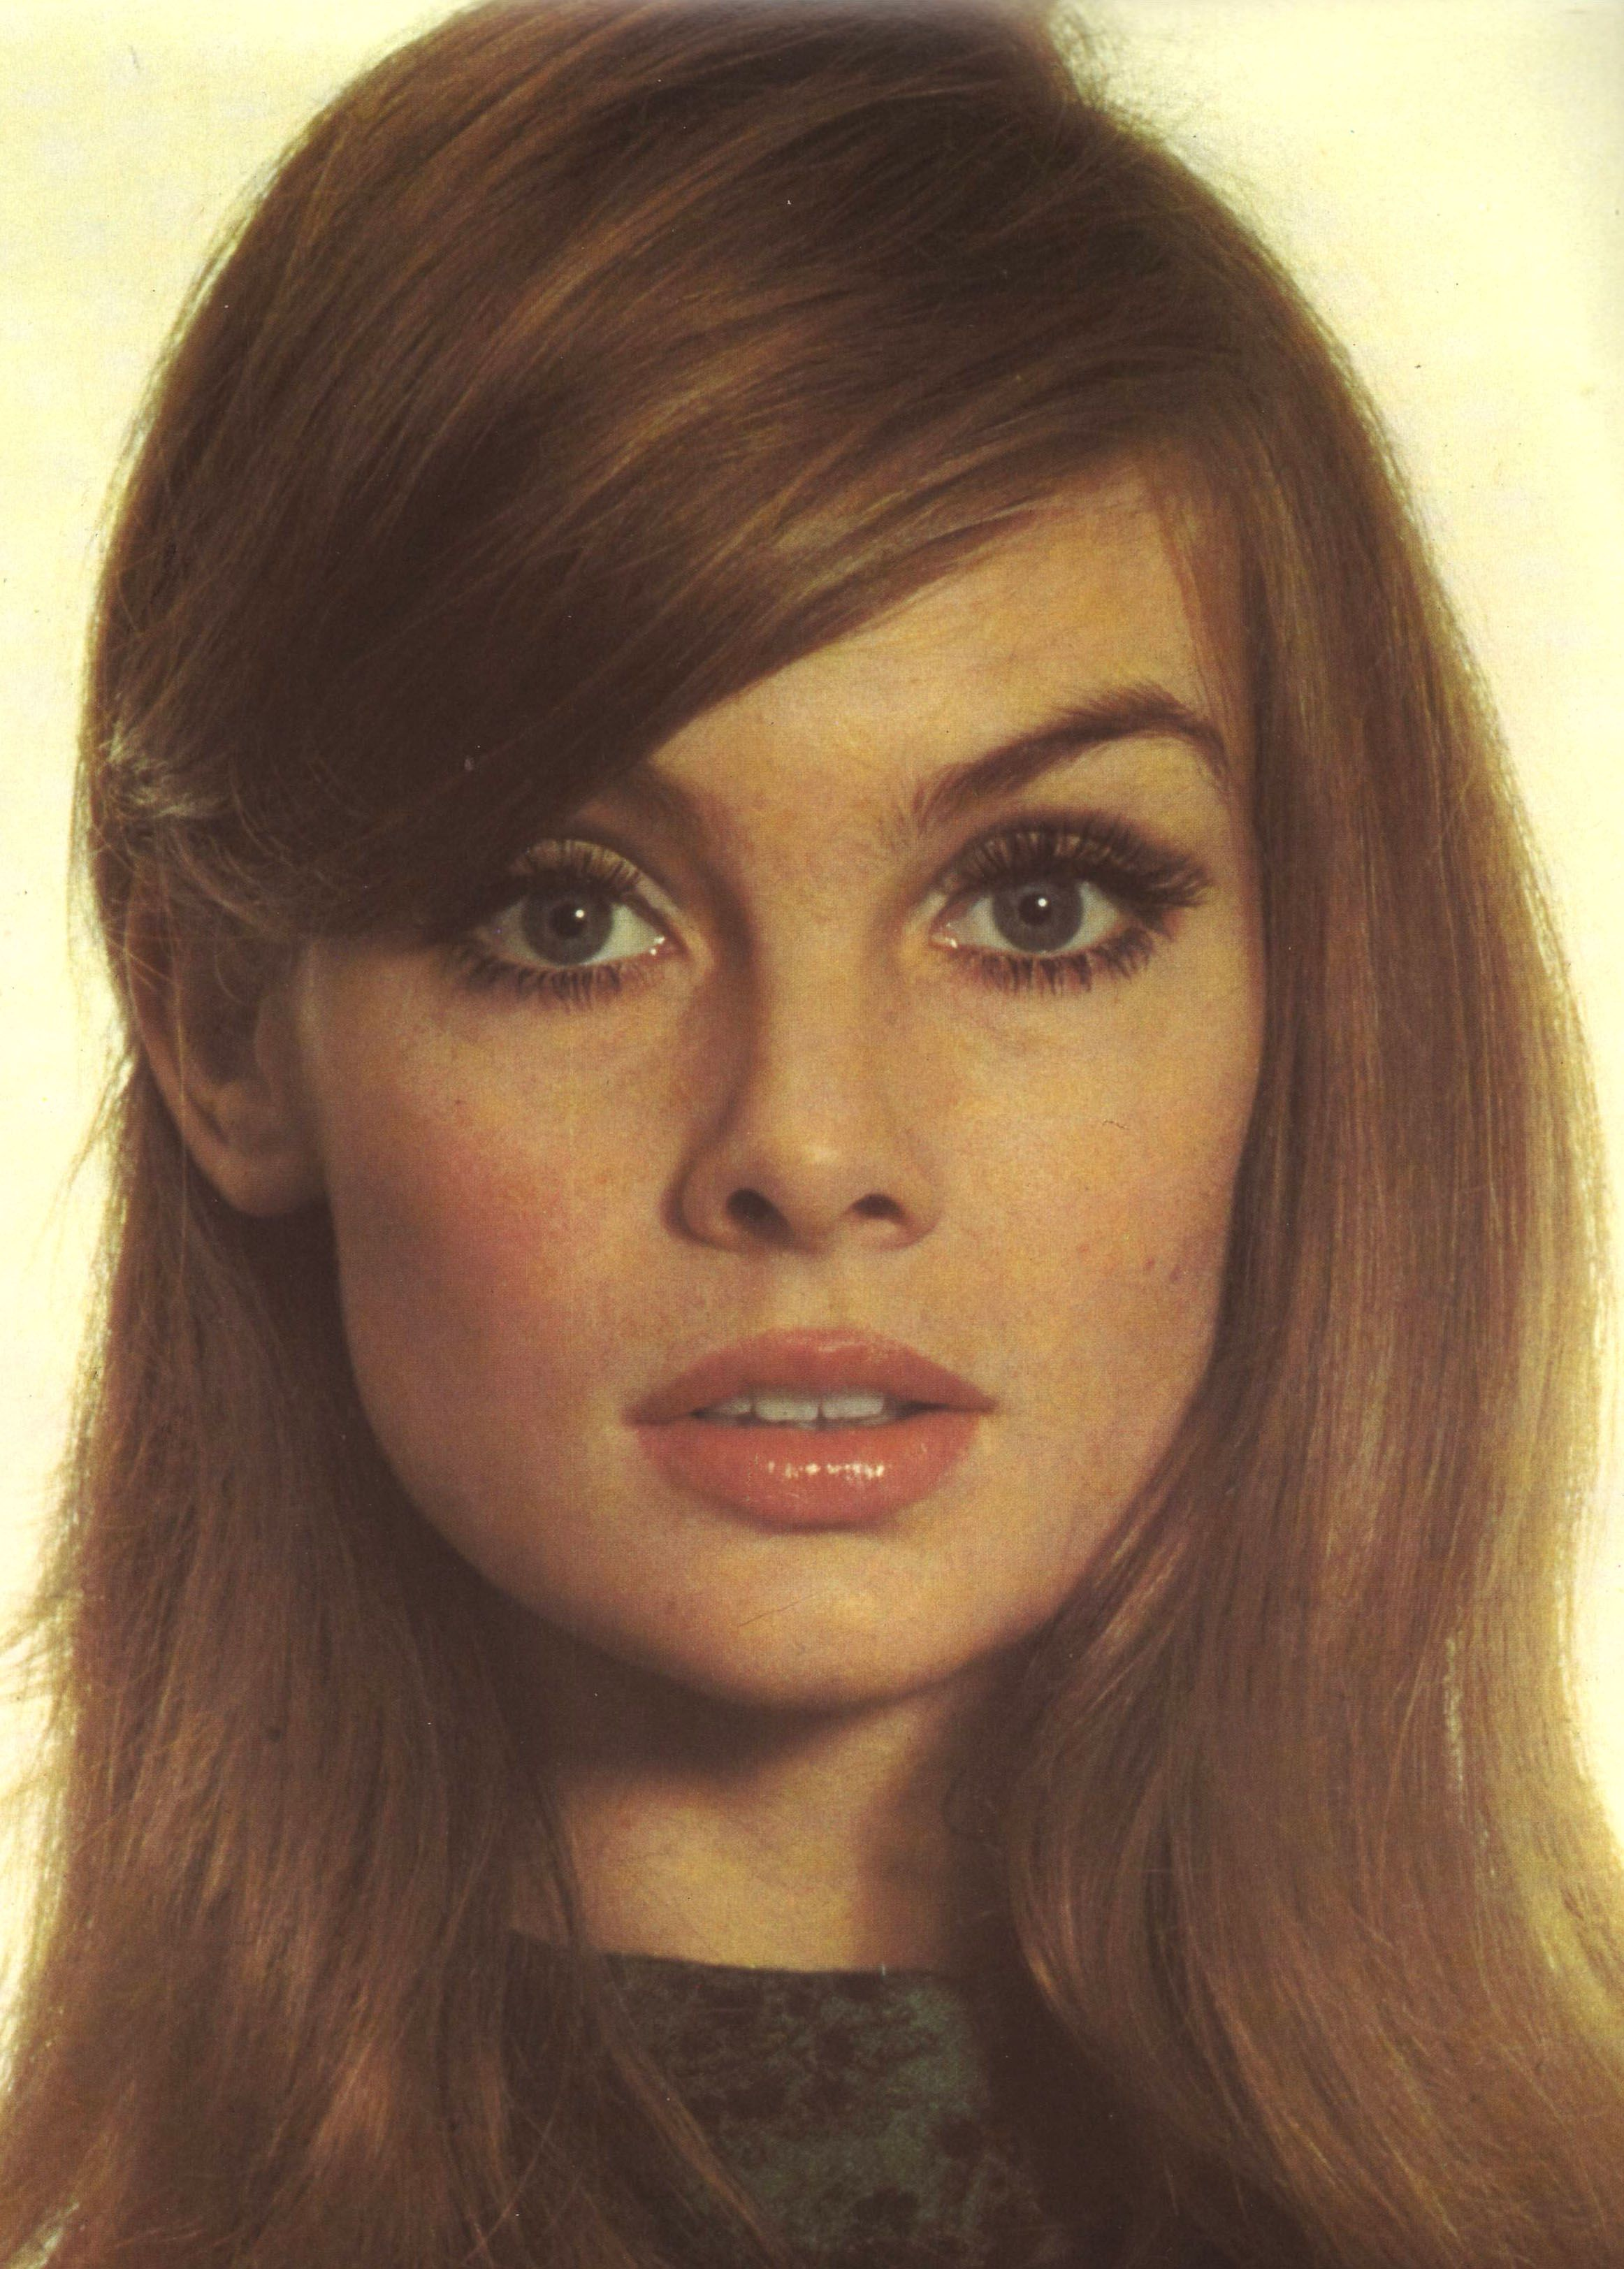 Miss Jean Rosemary Shrimpton 1966 If She Came To Pinterest And